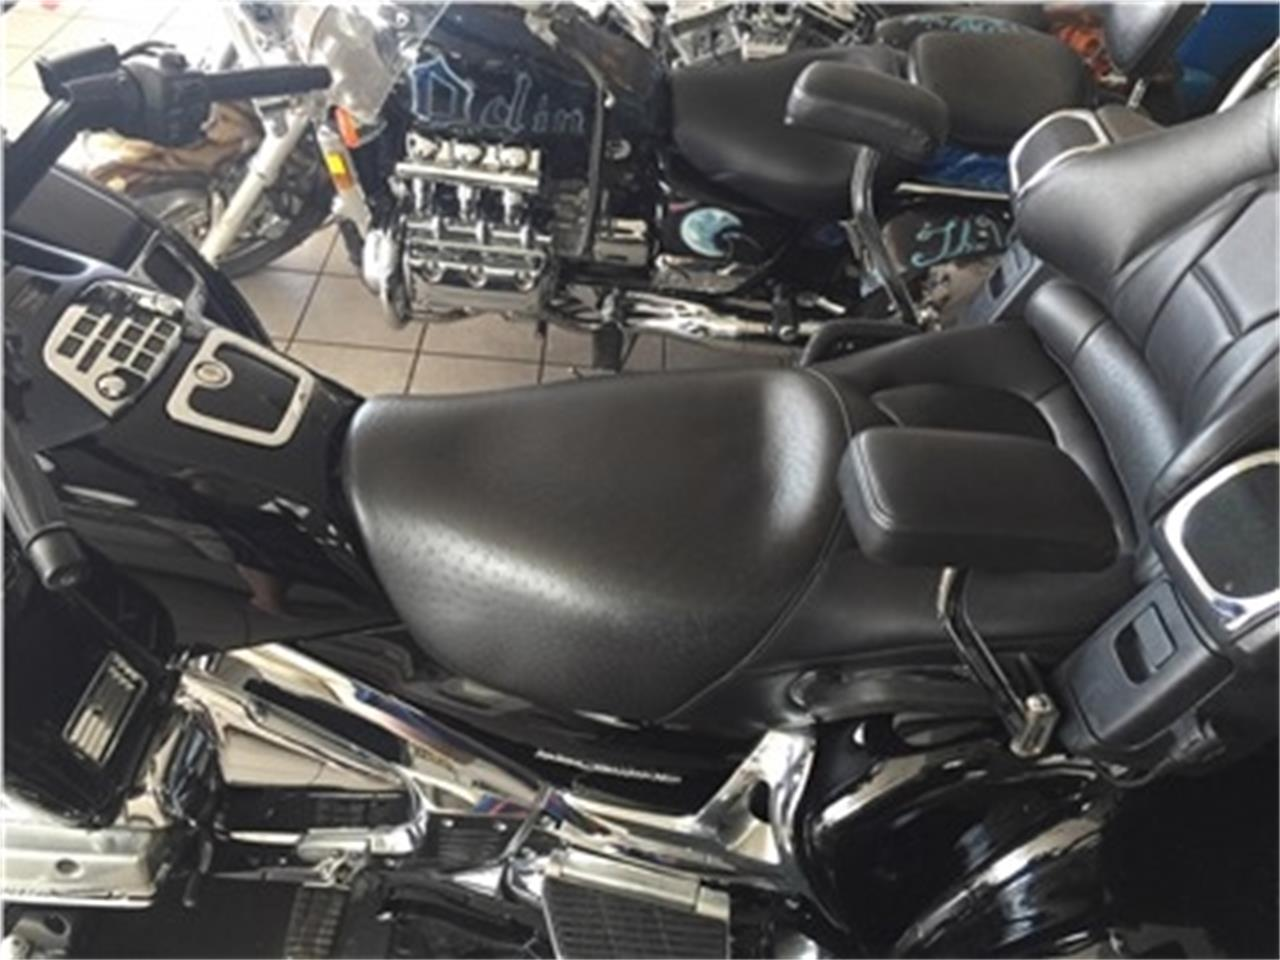 Large Picture of 2006 GOLDWING Goldwing located in Florida - $23,500.00 Offered by Sobe Classics - DM94